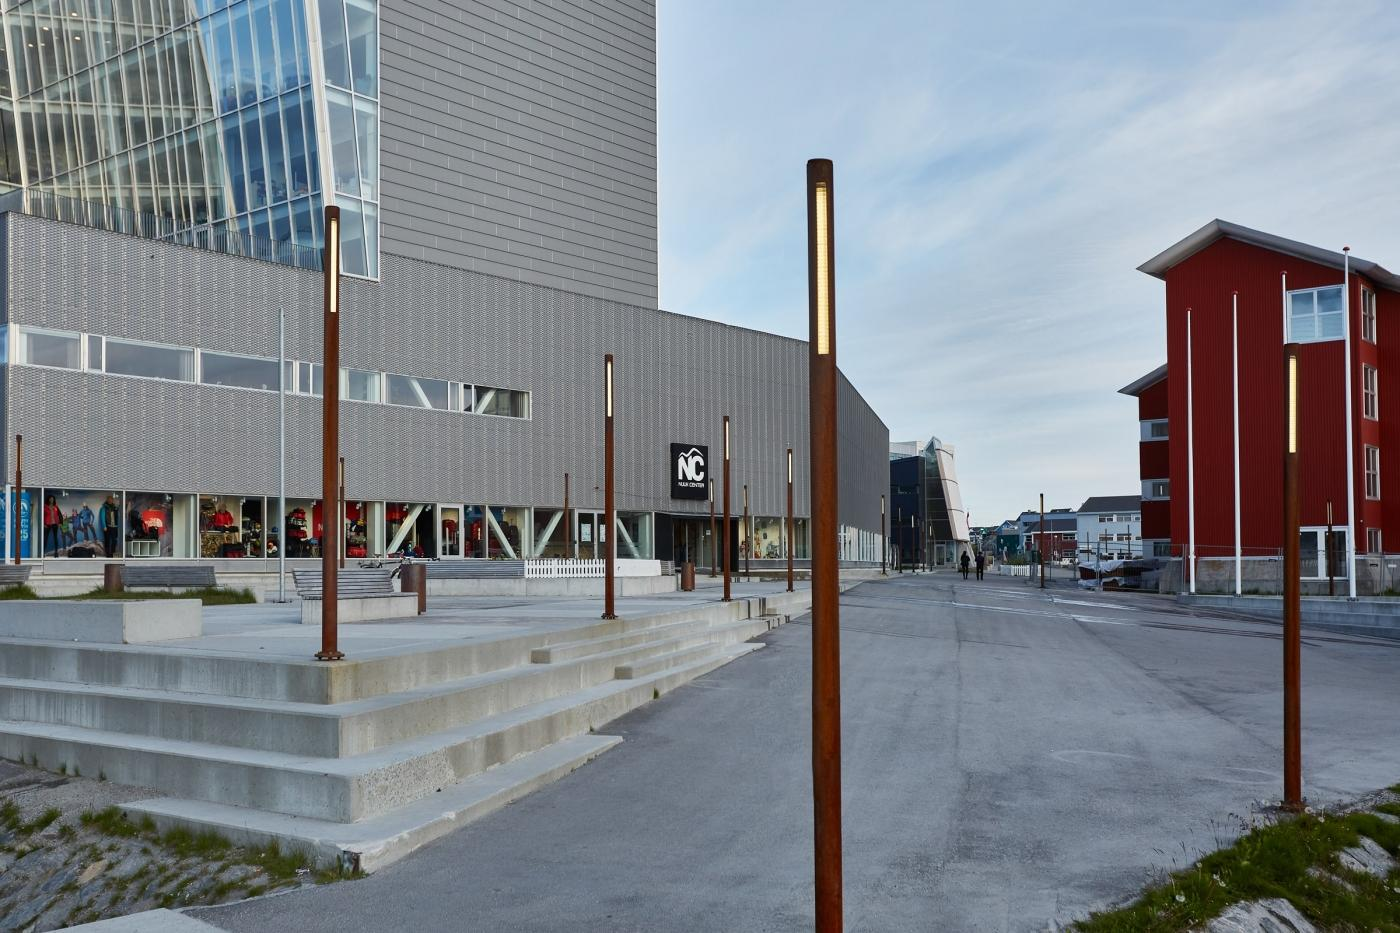 Arcitecture in Nuuk - Nuuk center - Peter Lindstrom - Visit Greenland